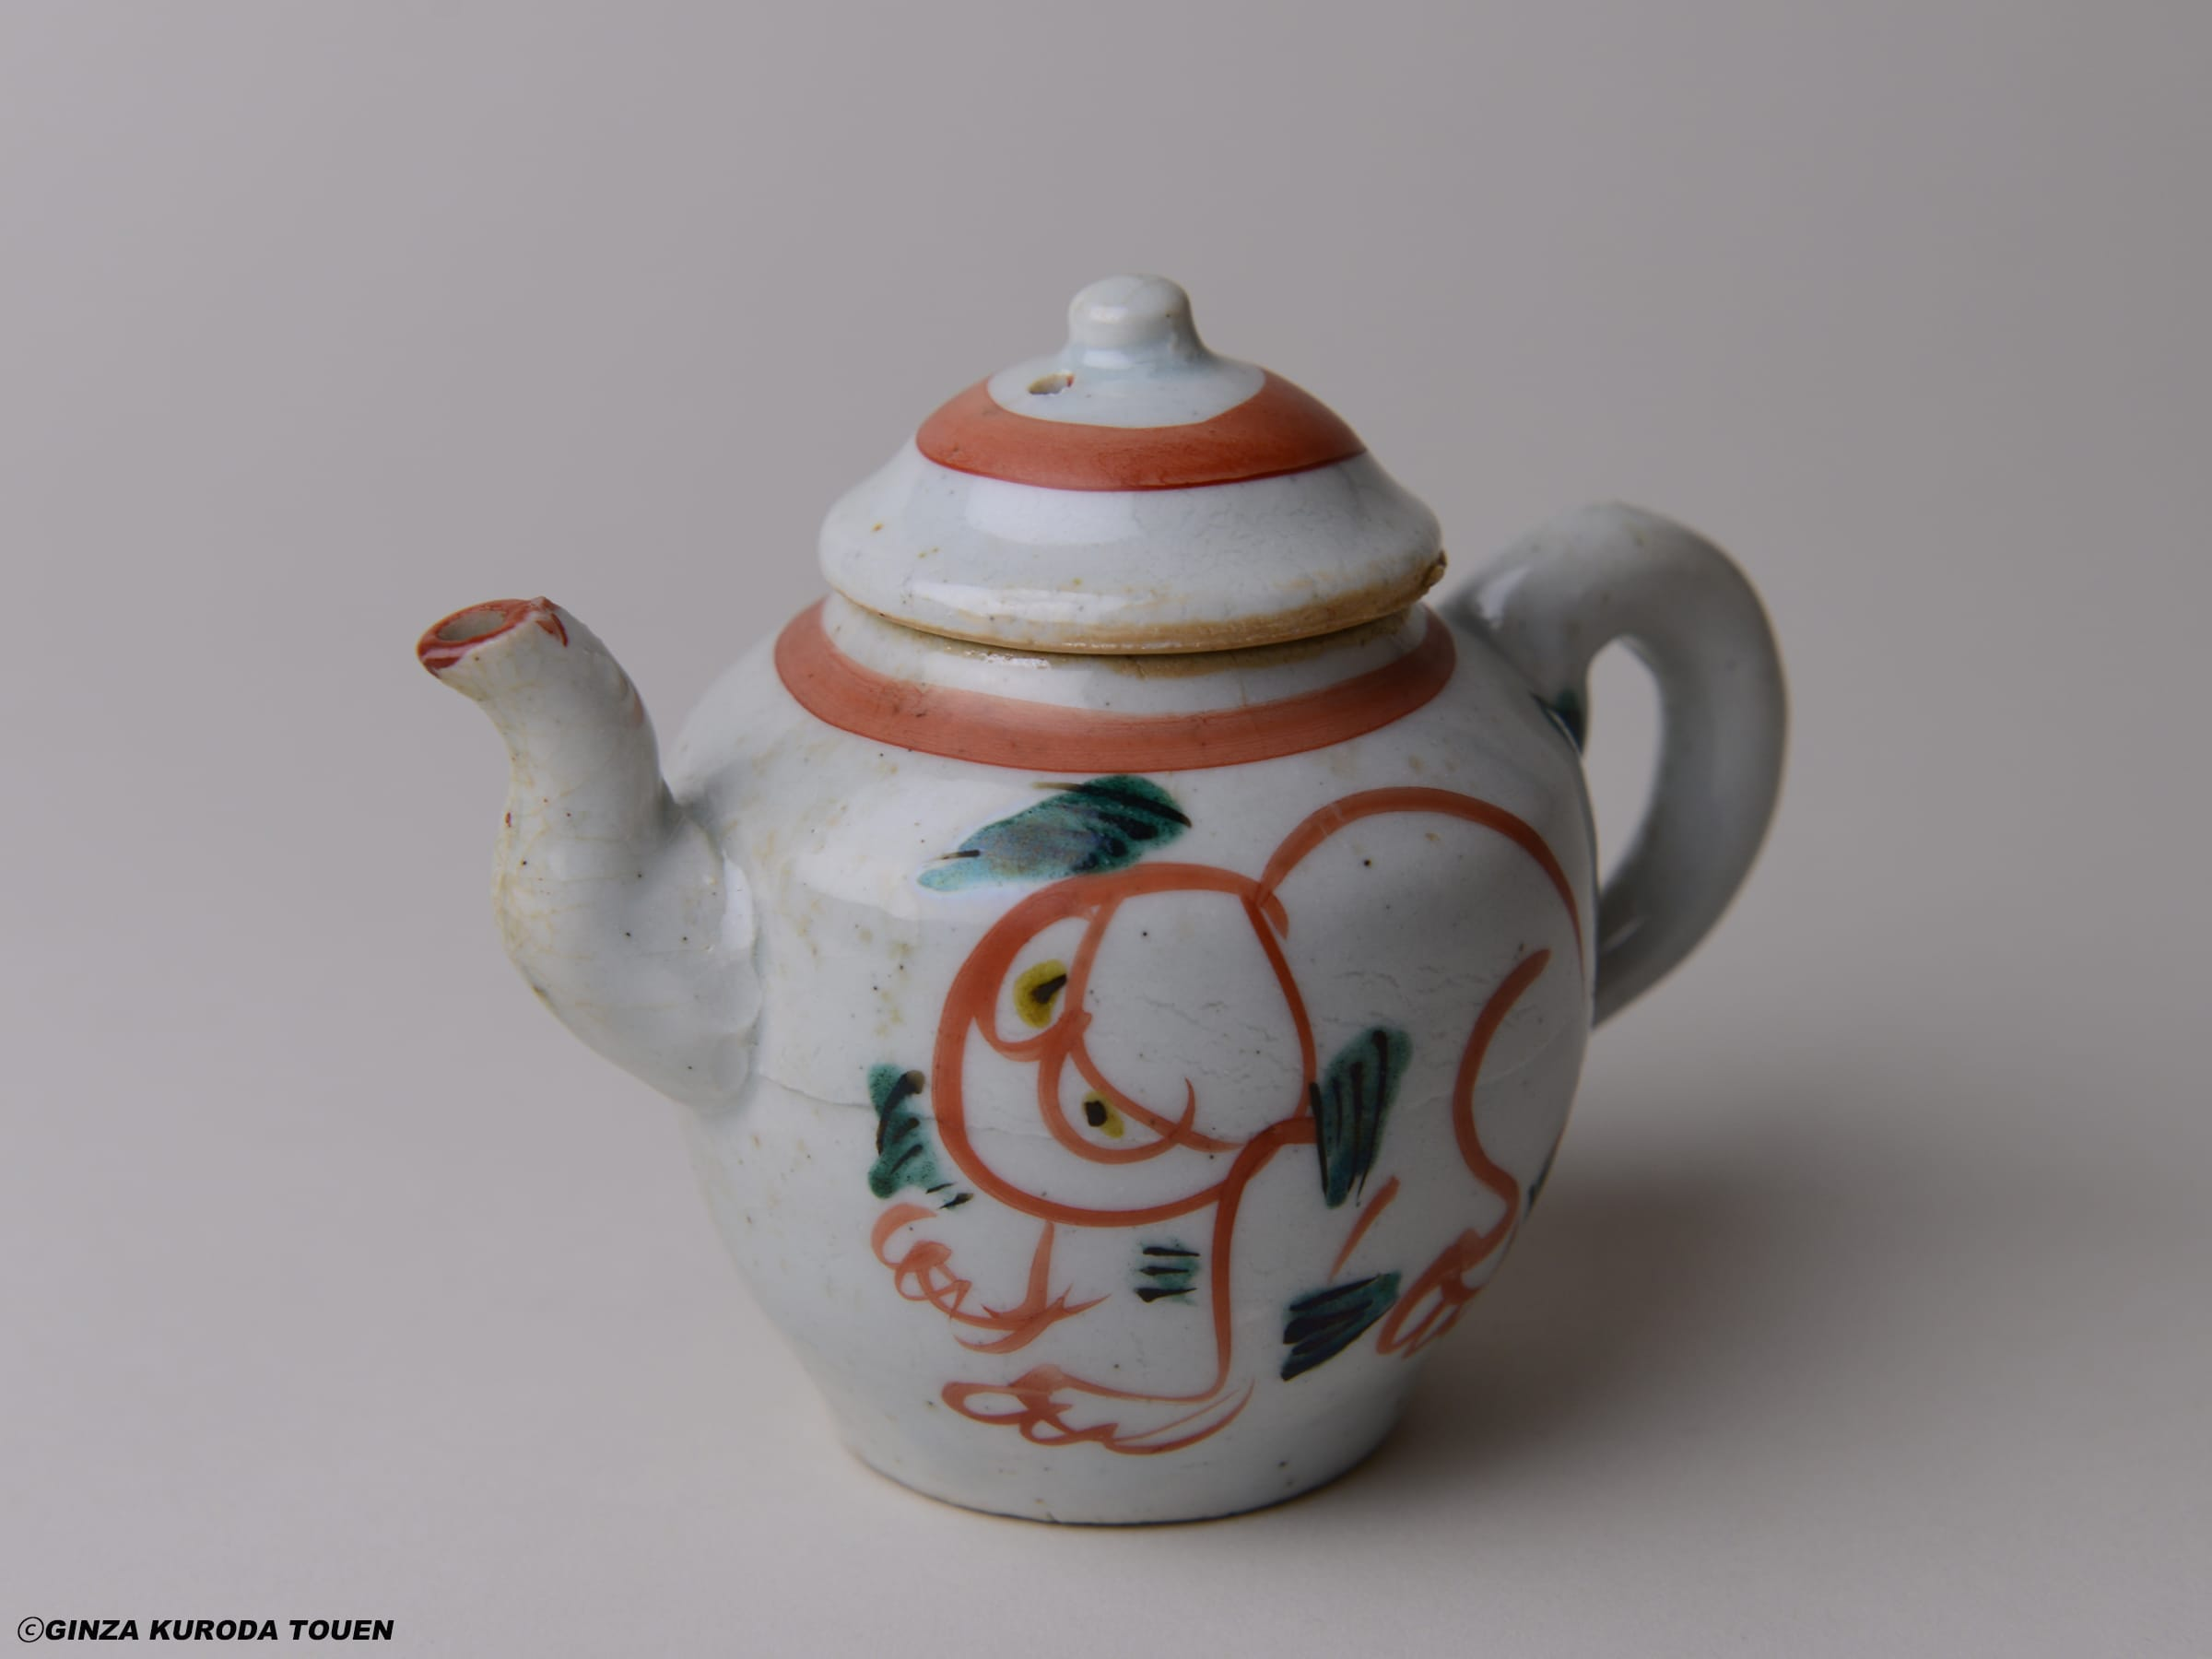 Munemaro Ishiguro: Tea pot, Red painting, Lion design